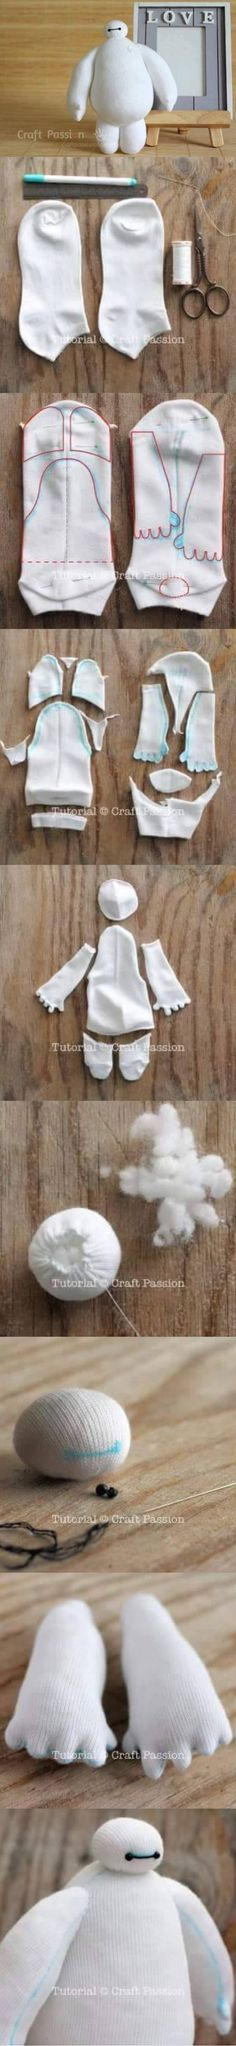 For those who are fans of Baymax and want to make them. Here, DIY Baymax from socks Sock Crafts, Cute Crafts, Sewing Crafts, Diy And Crafts, Crafts For Kids, Arts And Crafts, Paper Crafts, Craft Kids, Disney Diy